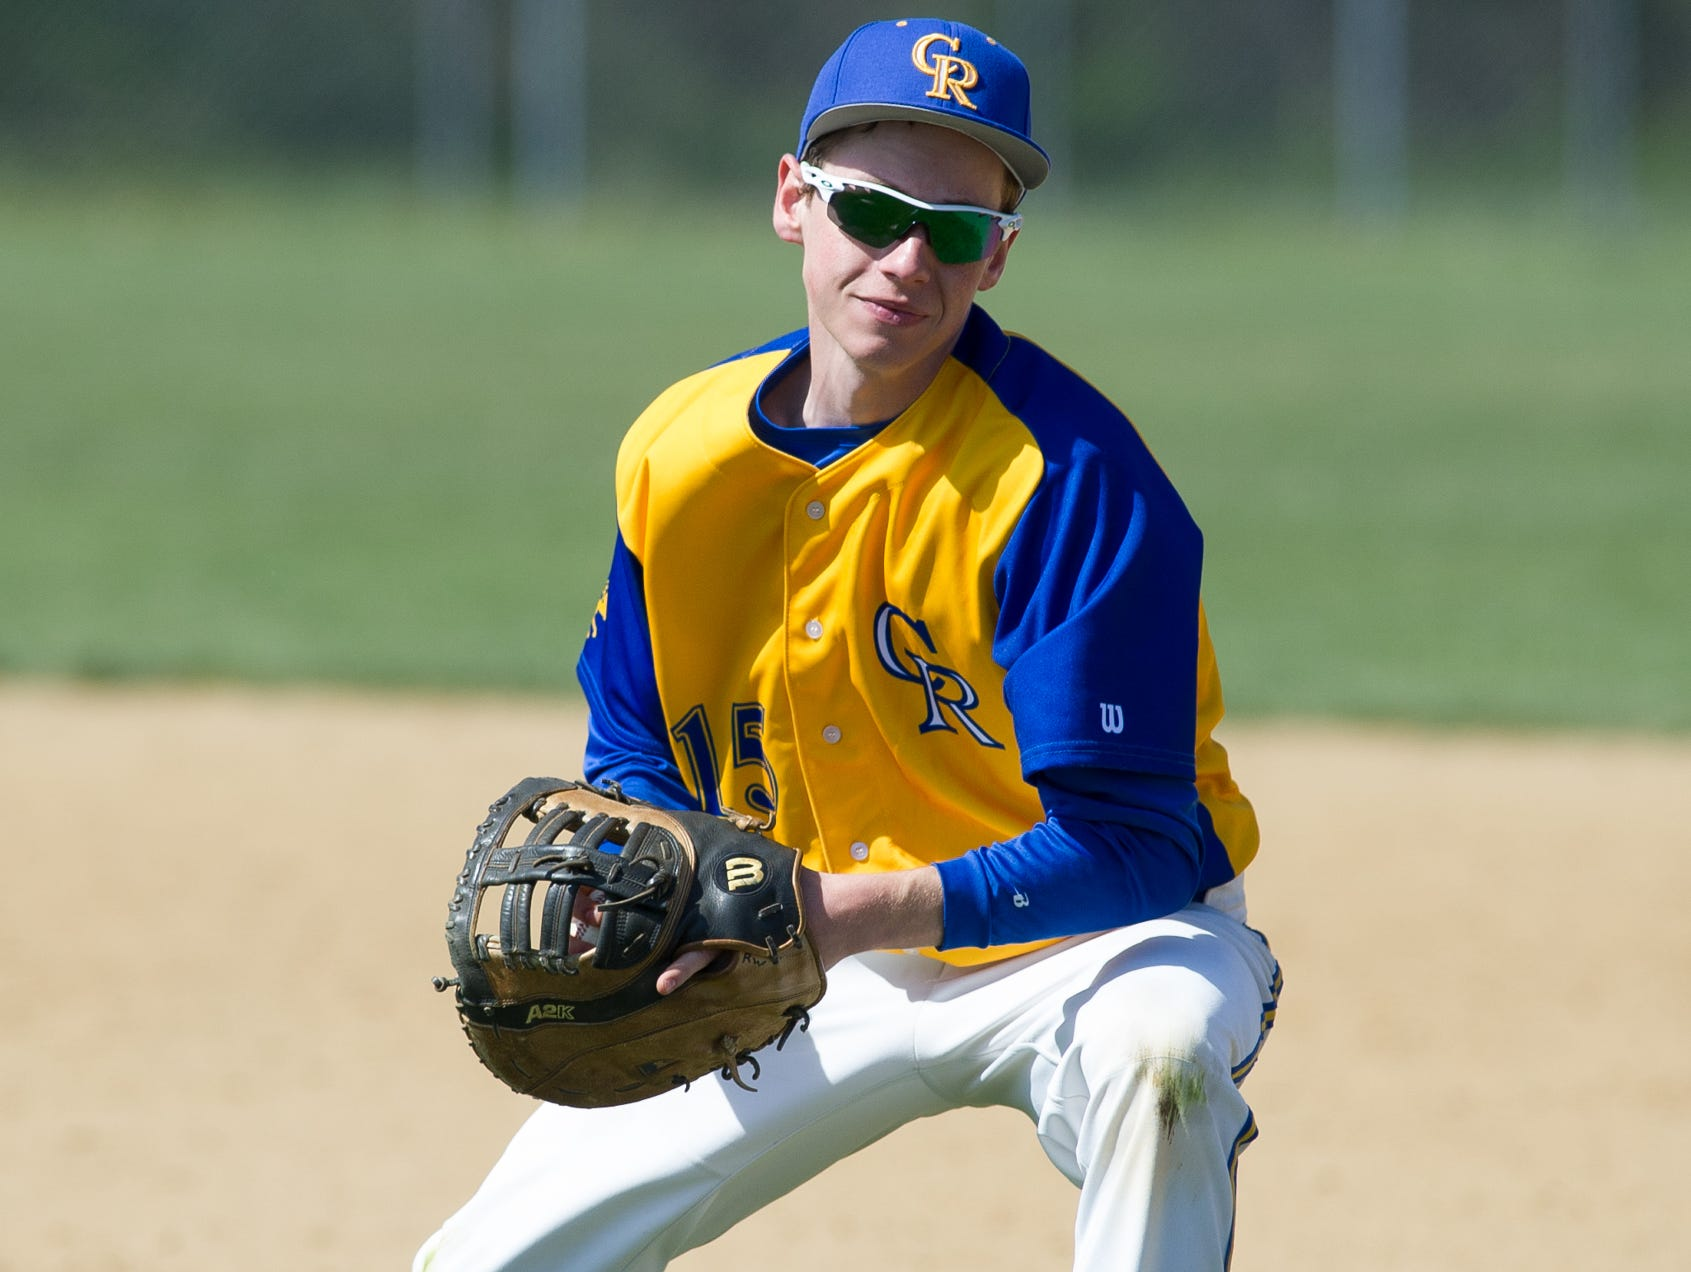 Caesar Rodney's Robert Williams (15) runs to first base to make a out in the 4th inning against St. Marks.